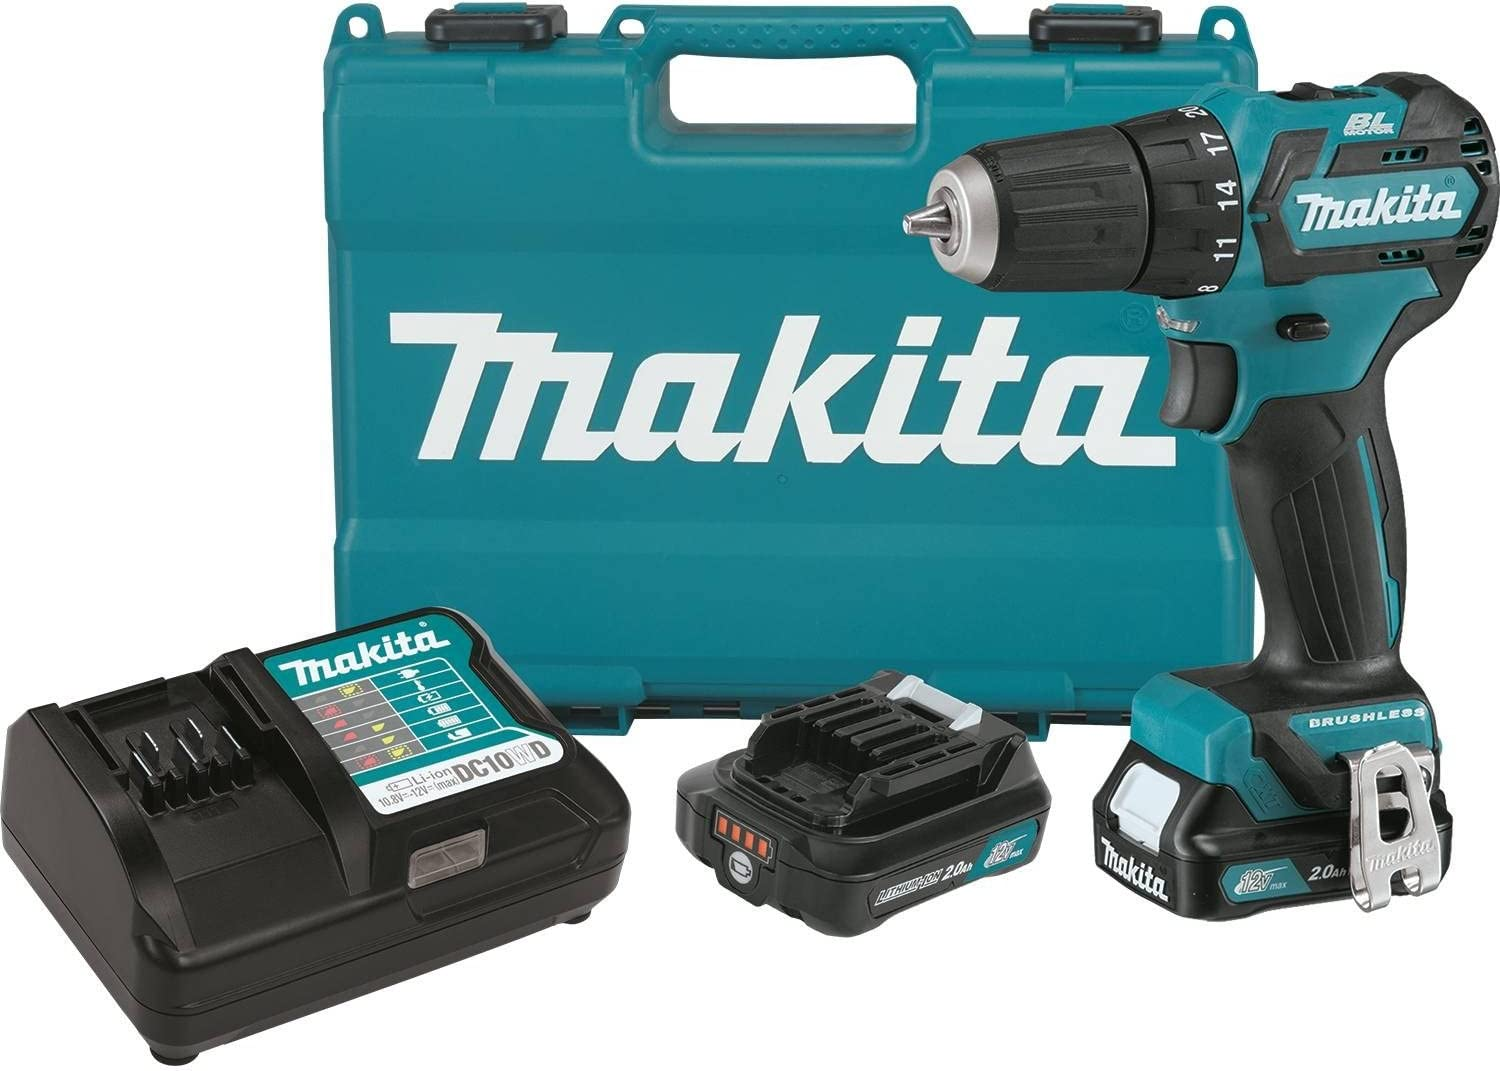 Makita FD07R1 12V MAX CXT Lithium-Ion Brushless Cordless Driver-Drill Kit, 3 8